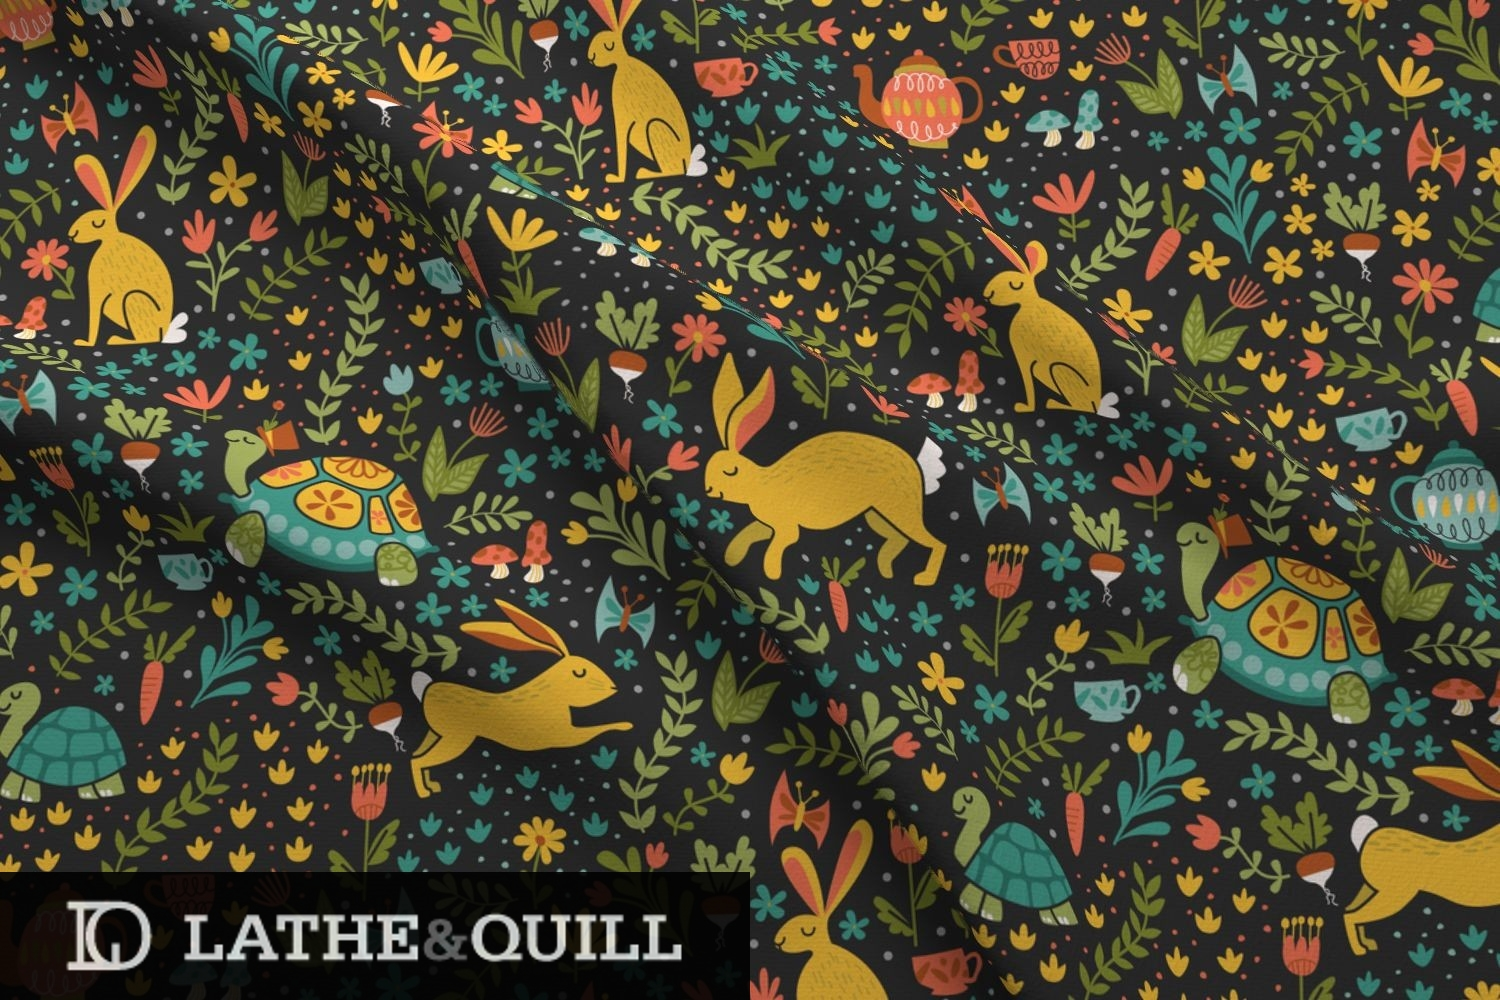 spring pattern of bunnies running with turtles in a garden